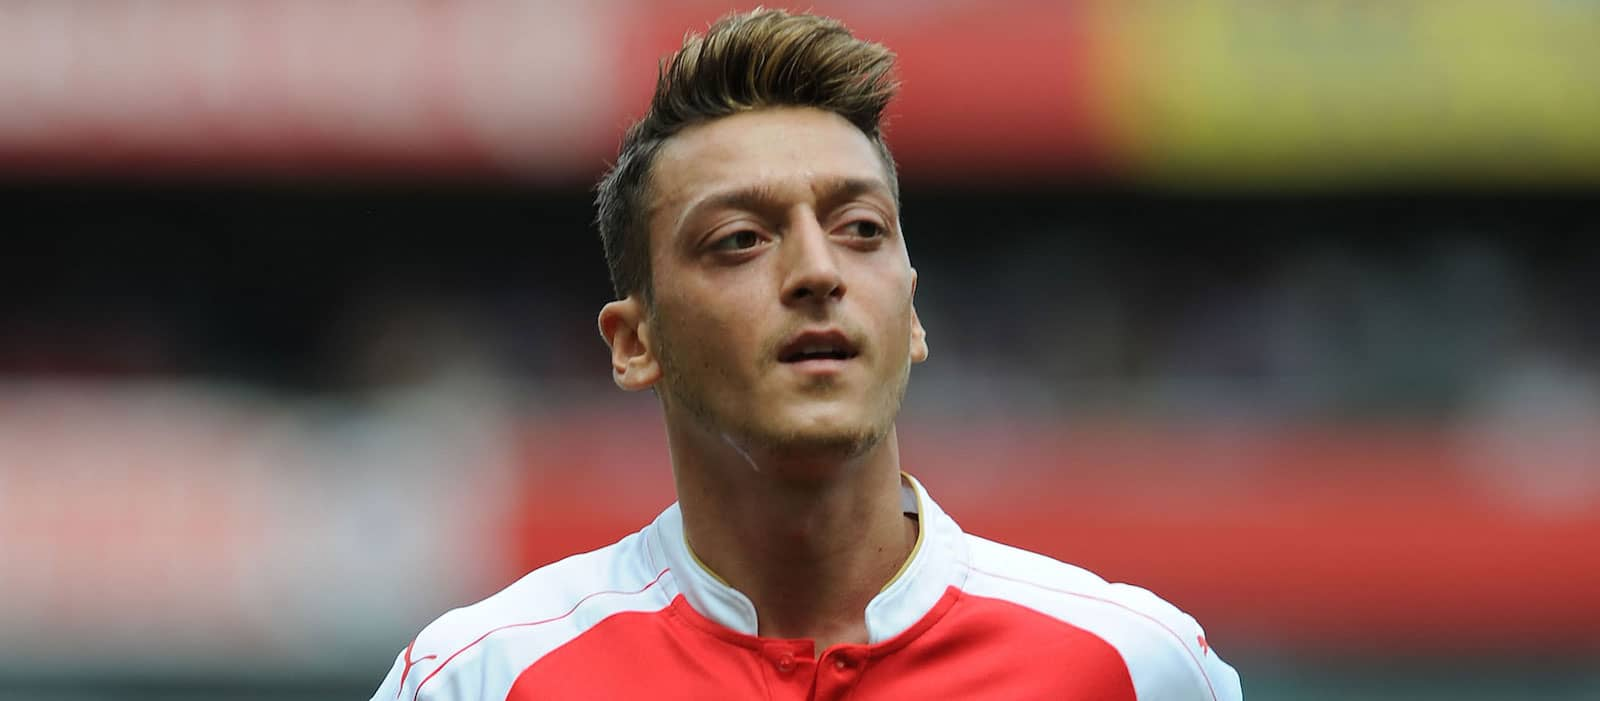 Jose Mourinho eyeing January bid for Arsenal's Mesut Ozil – report